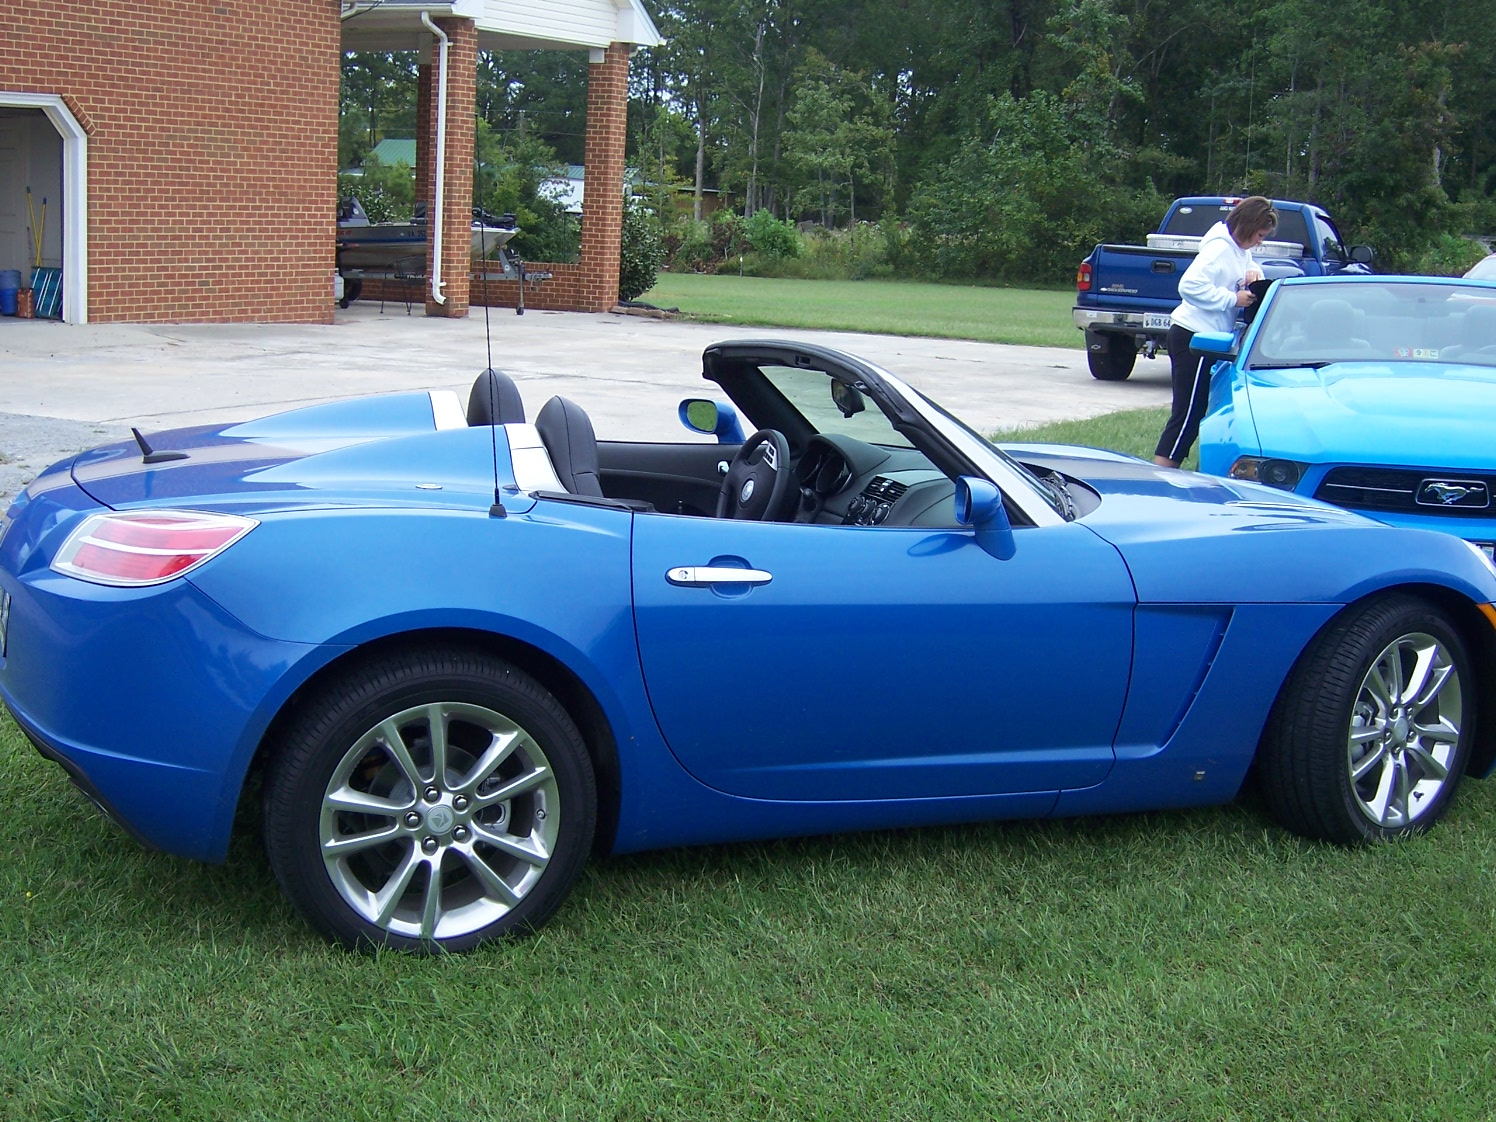 Hydro Blue 2009 limited edition saturn sky for sale-016.jpg